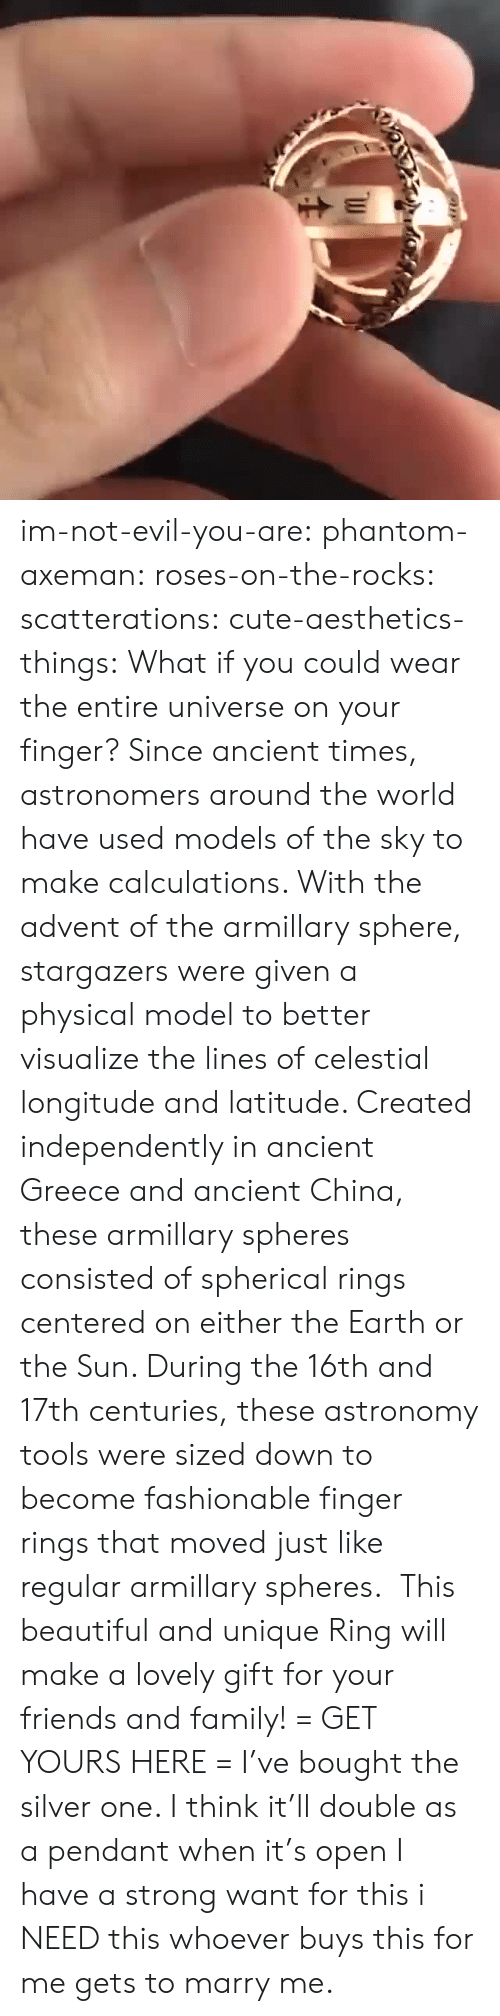 Buys: im-not-evil-you-are:  phantom-axeman: roses-on-the-rocks:  scatterations:   cute-aesthetics-things:  What if you could wear the entire universe on your finger? Since ancient times, astronomers around the world have used models of the sky to make calculations. With the advent of the armillary sphere, stargazers were given a physical model to better visualize the lines of celestial longitude and latitude. Created independently in ancient Greece and ancient China, these armillary spheres consisted of spherical rings centered on either the Earth or the Sun. During the 16th and 17th centuries, these astronomy tools were sized down to become fashionable finger rings that moved just like regular armillary spheres. This beautiful and unique Ring will make a lovely gift for your friends and family! = GET YOURS HERE =   I've bought the silver one. I think it'll double as a pendant when it's open    I have a strong want for this   i NEED this  whoever buys this for me gets to marry me.